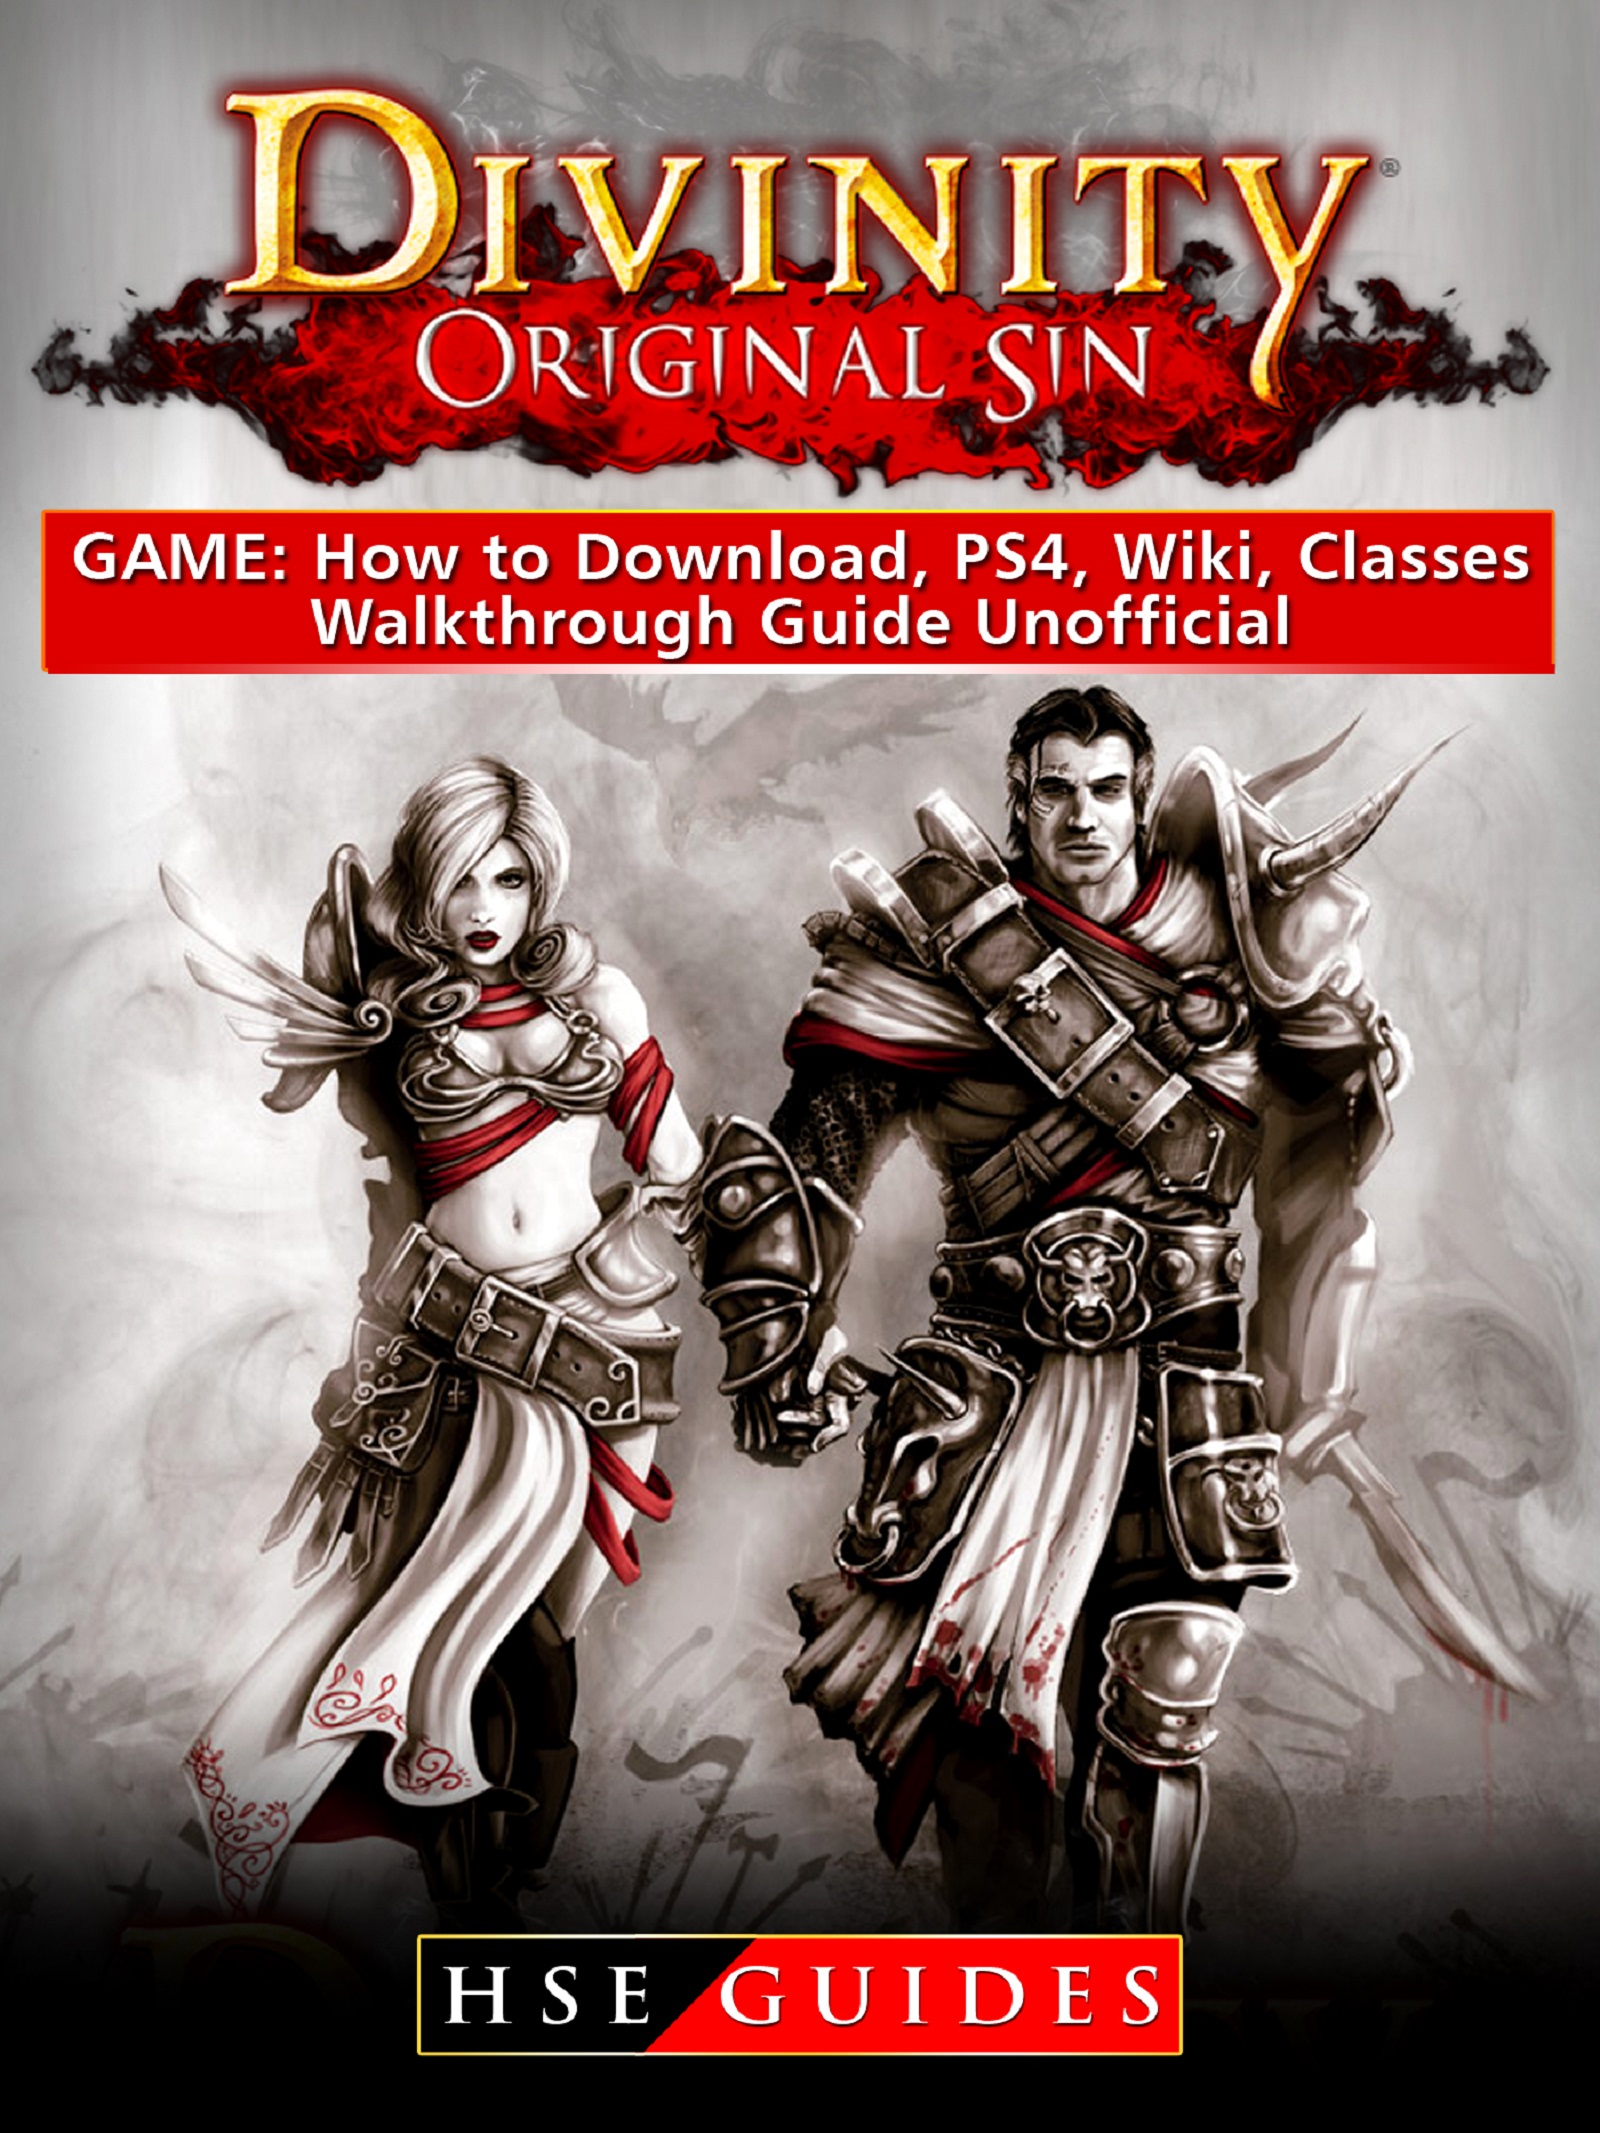 Divinity Original Sin Game: How to Download, PS4, Wiki, Classes, Walkthrough Guide Unofficial By HSE Guides